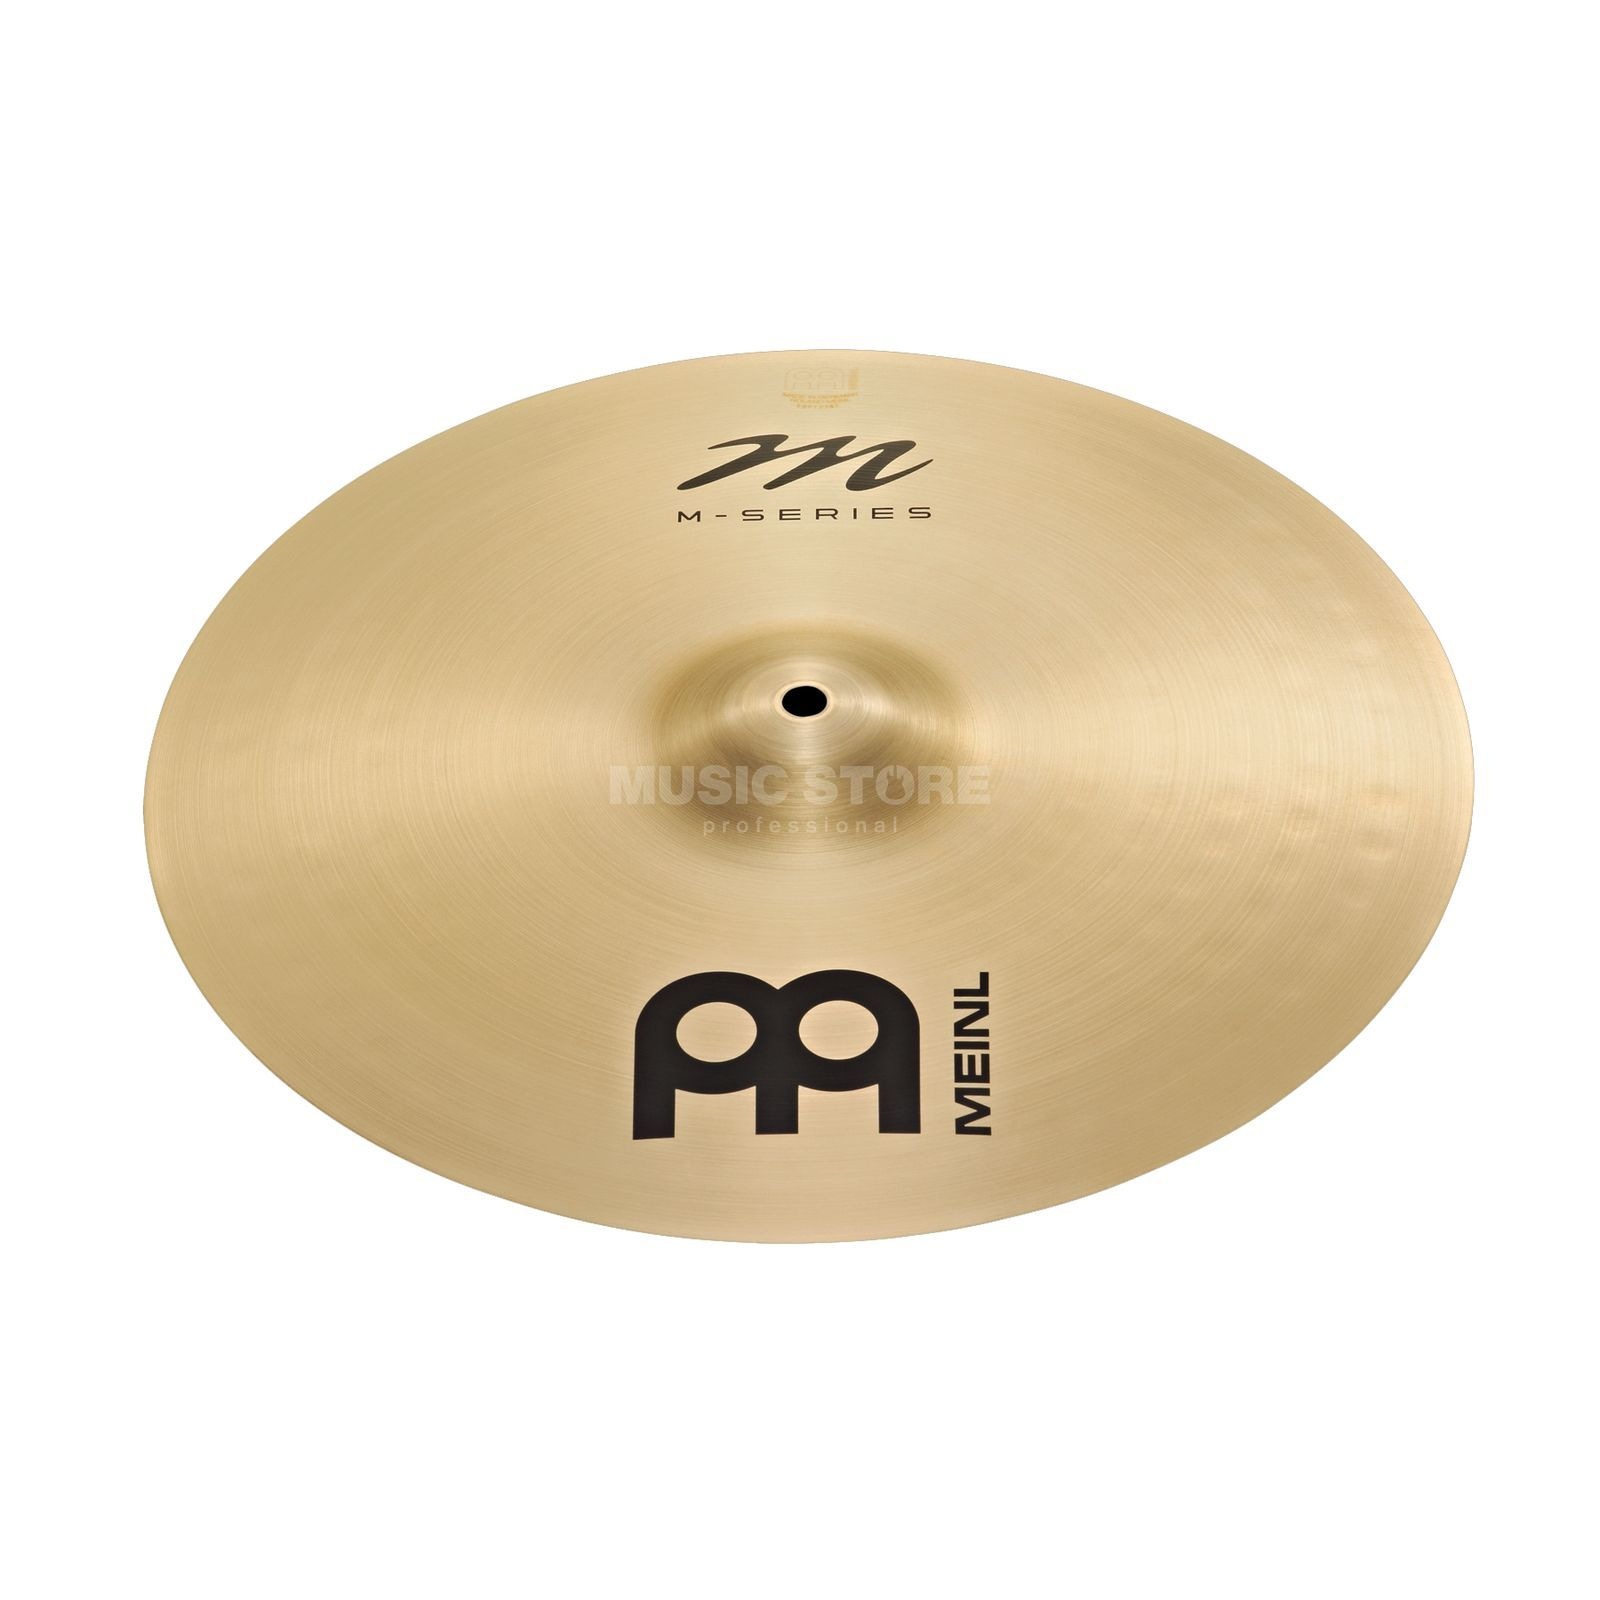 Meinl M-Series Heavy Crash MS16HC, Overstock Produktbild